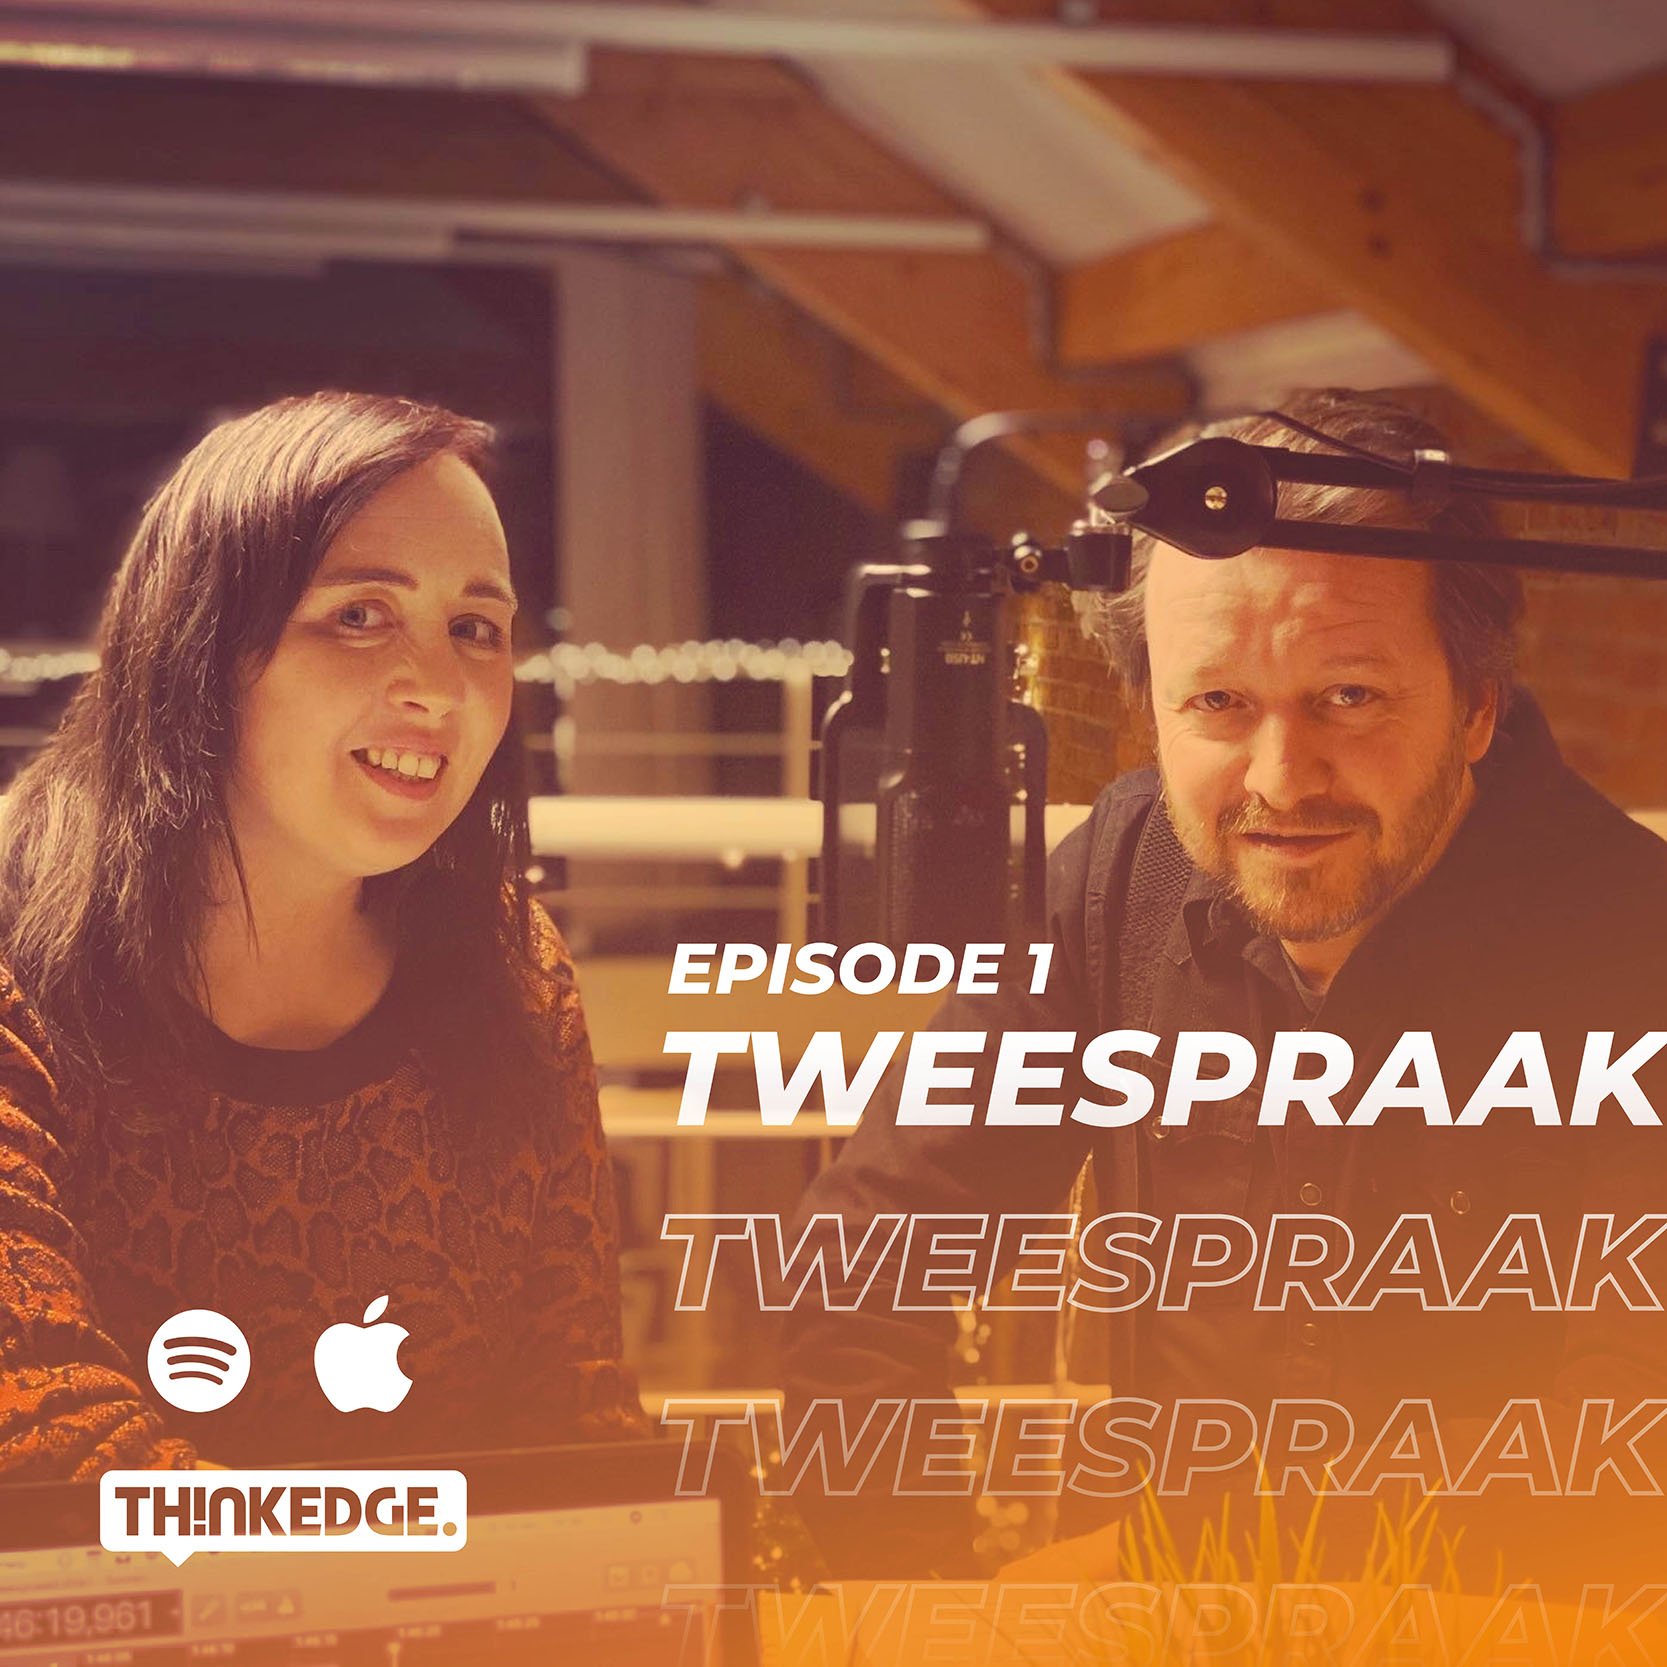 Tweespraak Sofie Vanrafelghem Mathias Sercu